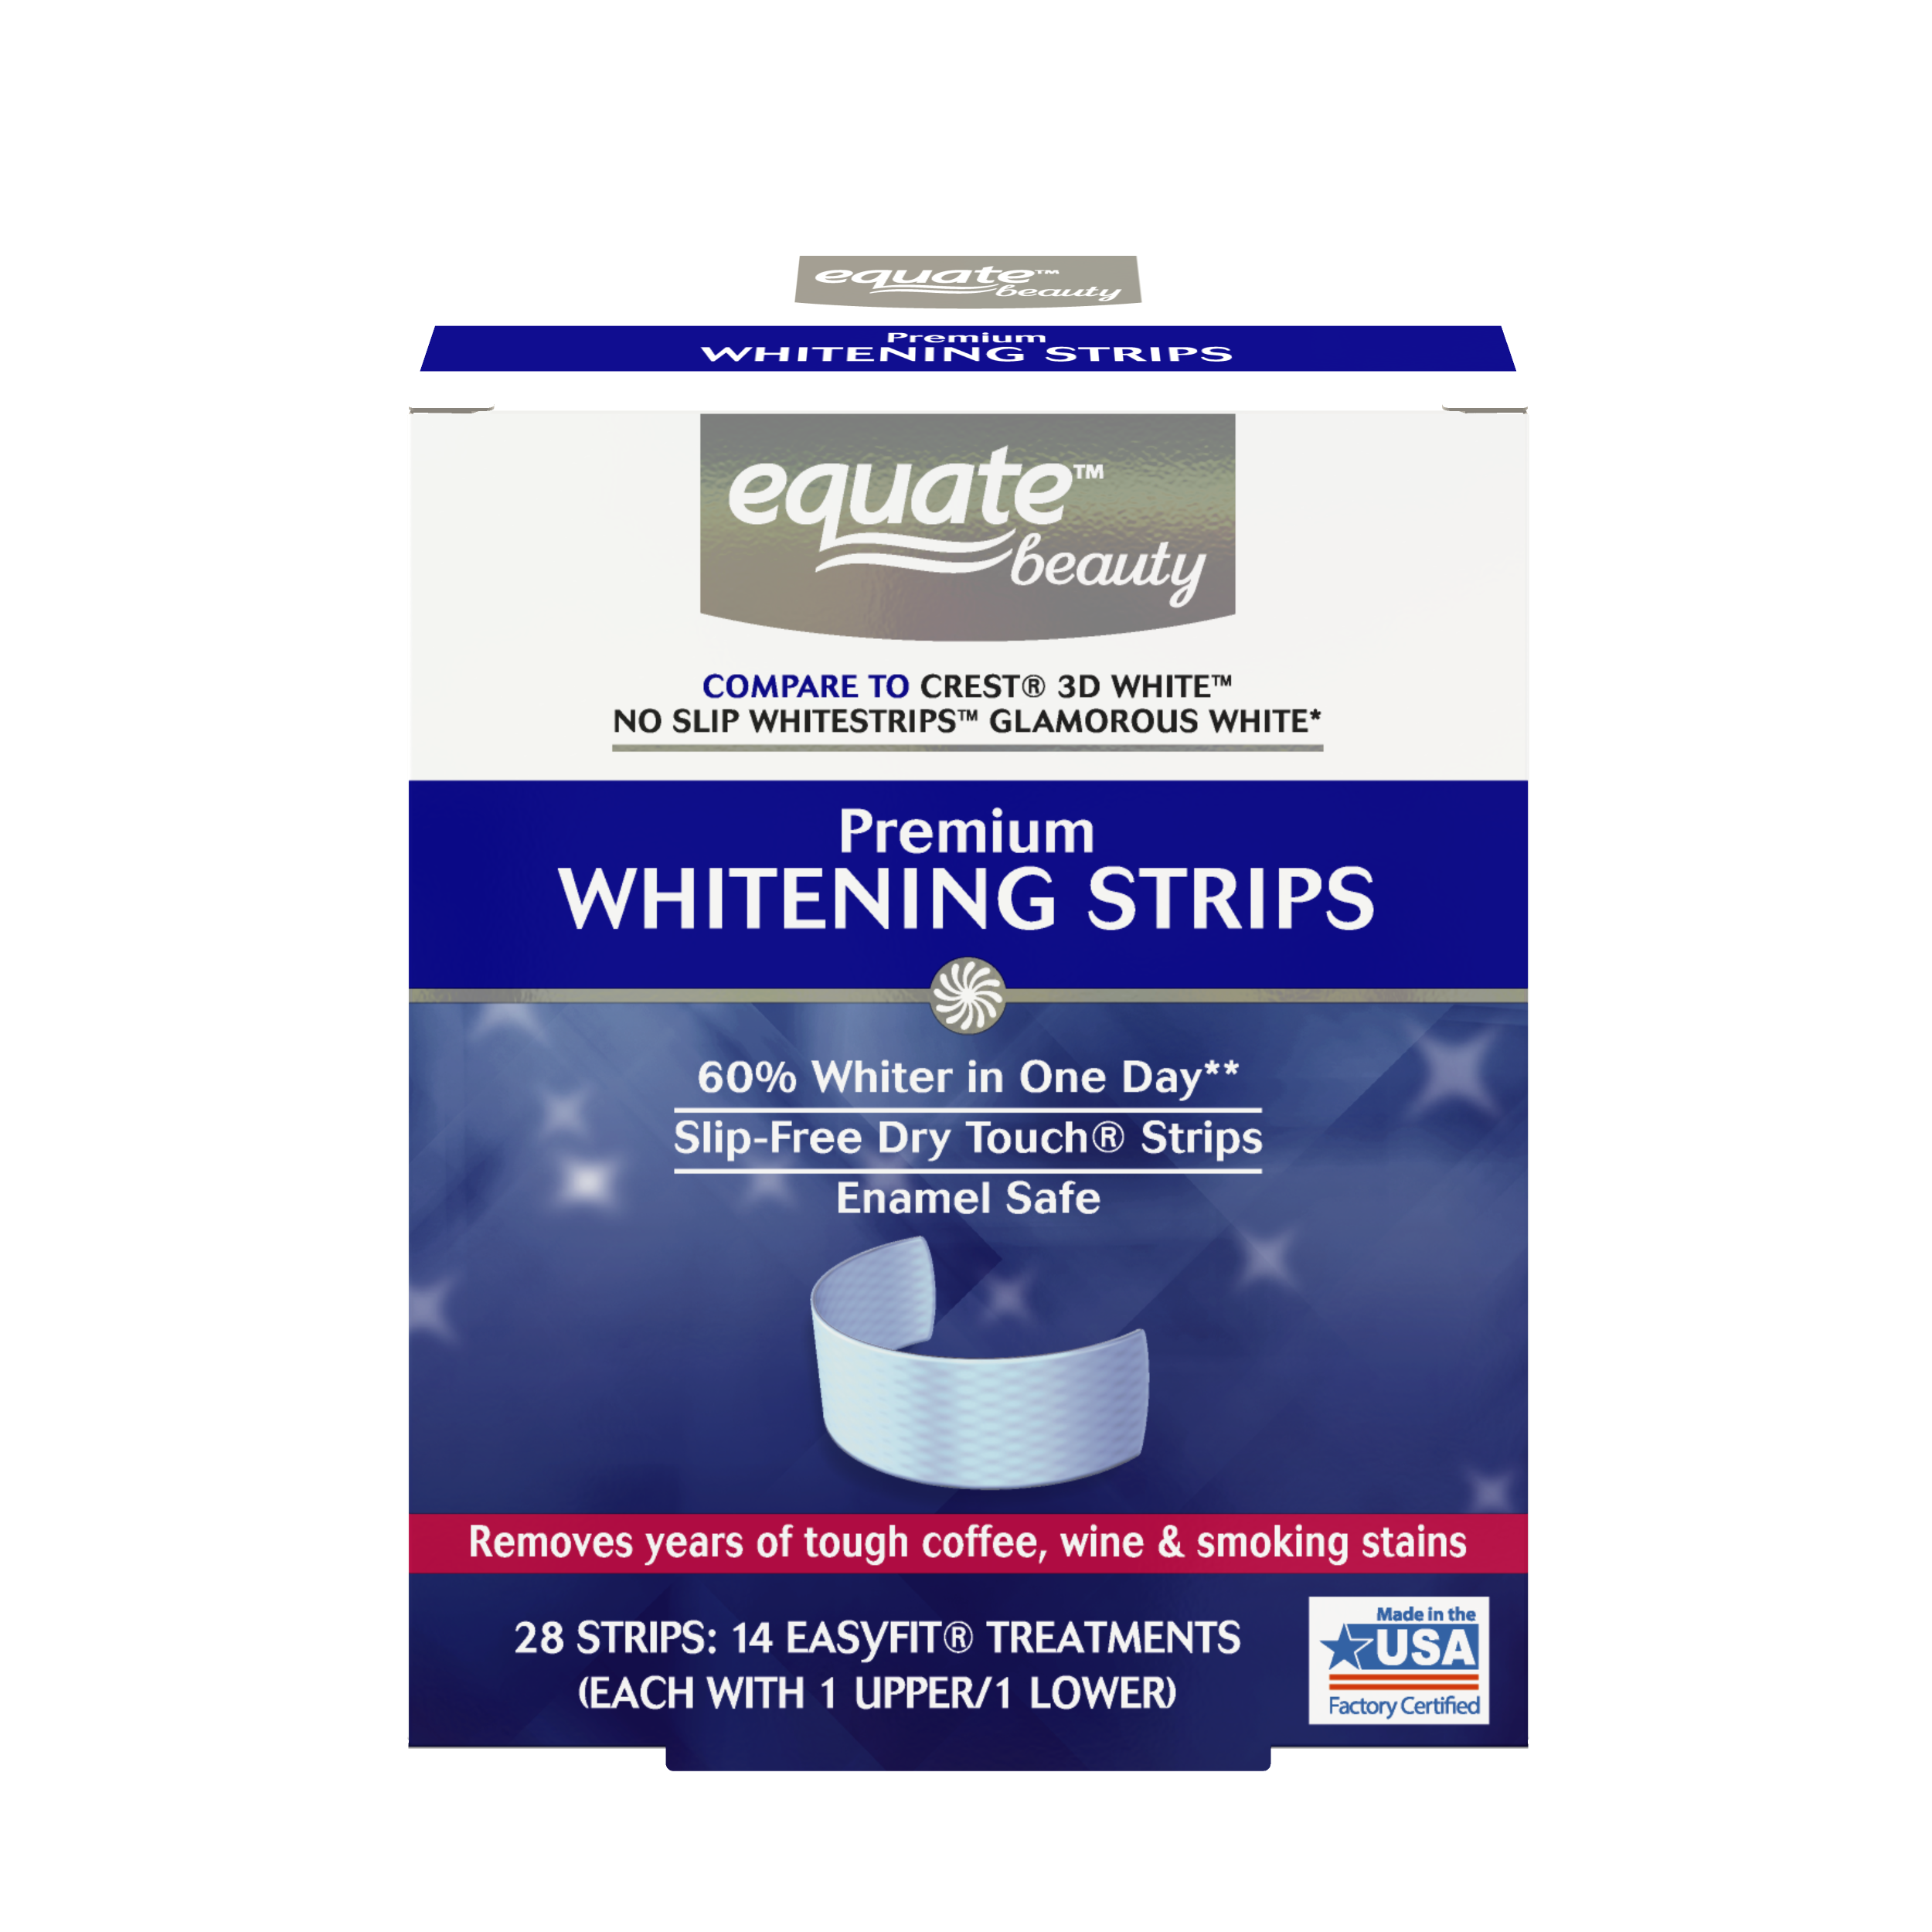 Equate Beauty Premium Teeth Whitening Strips, 14 Treatments (Compare to Crest 3D White Glamorous White)